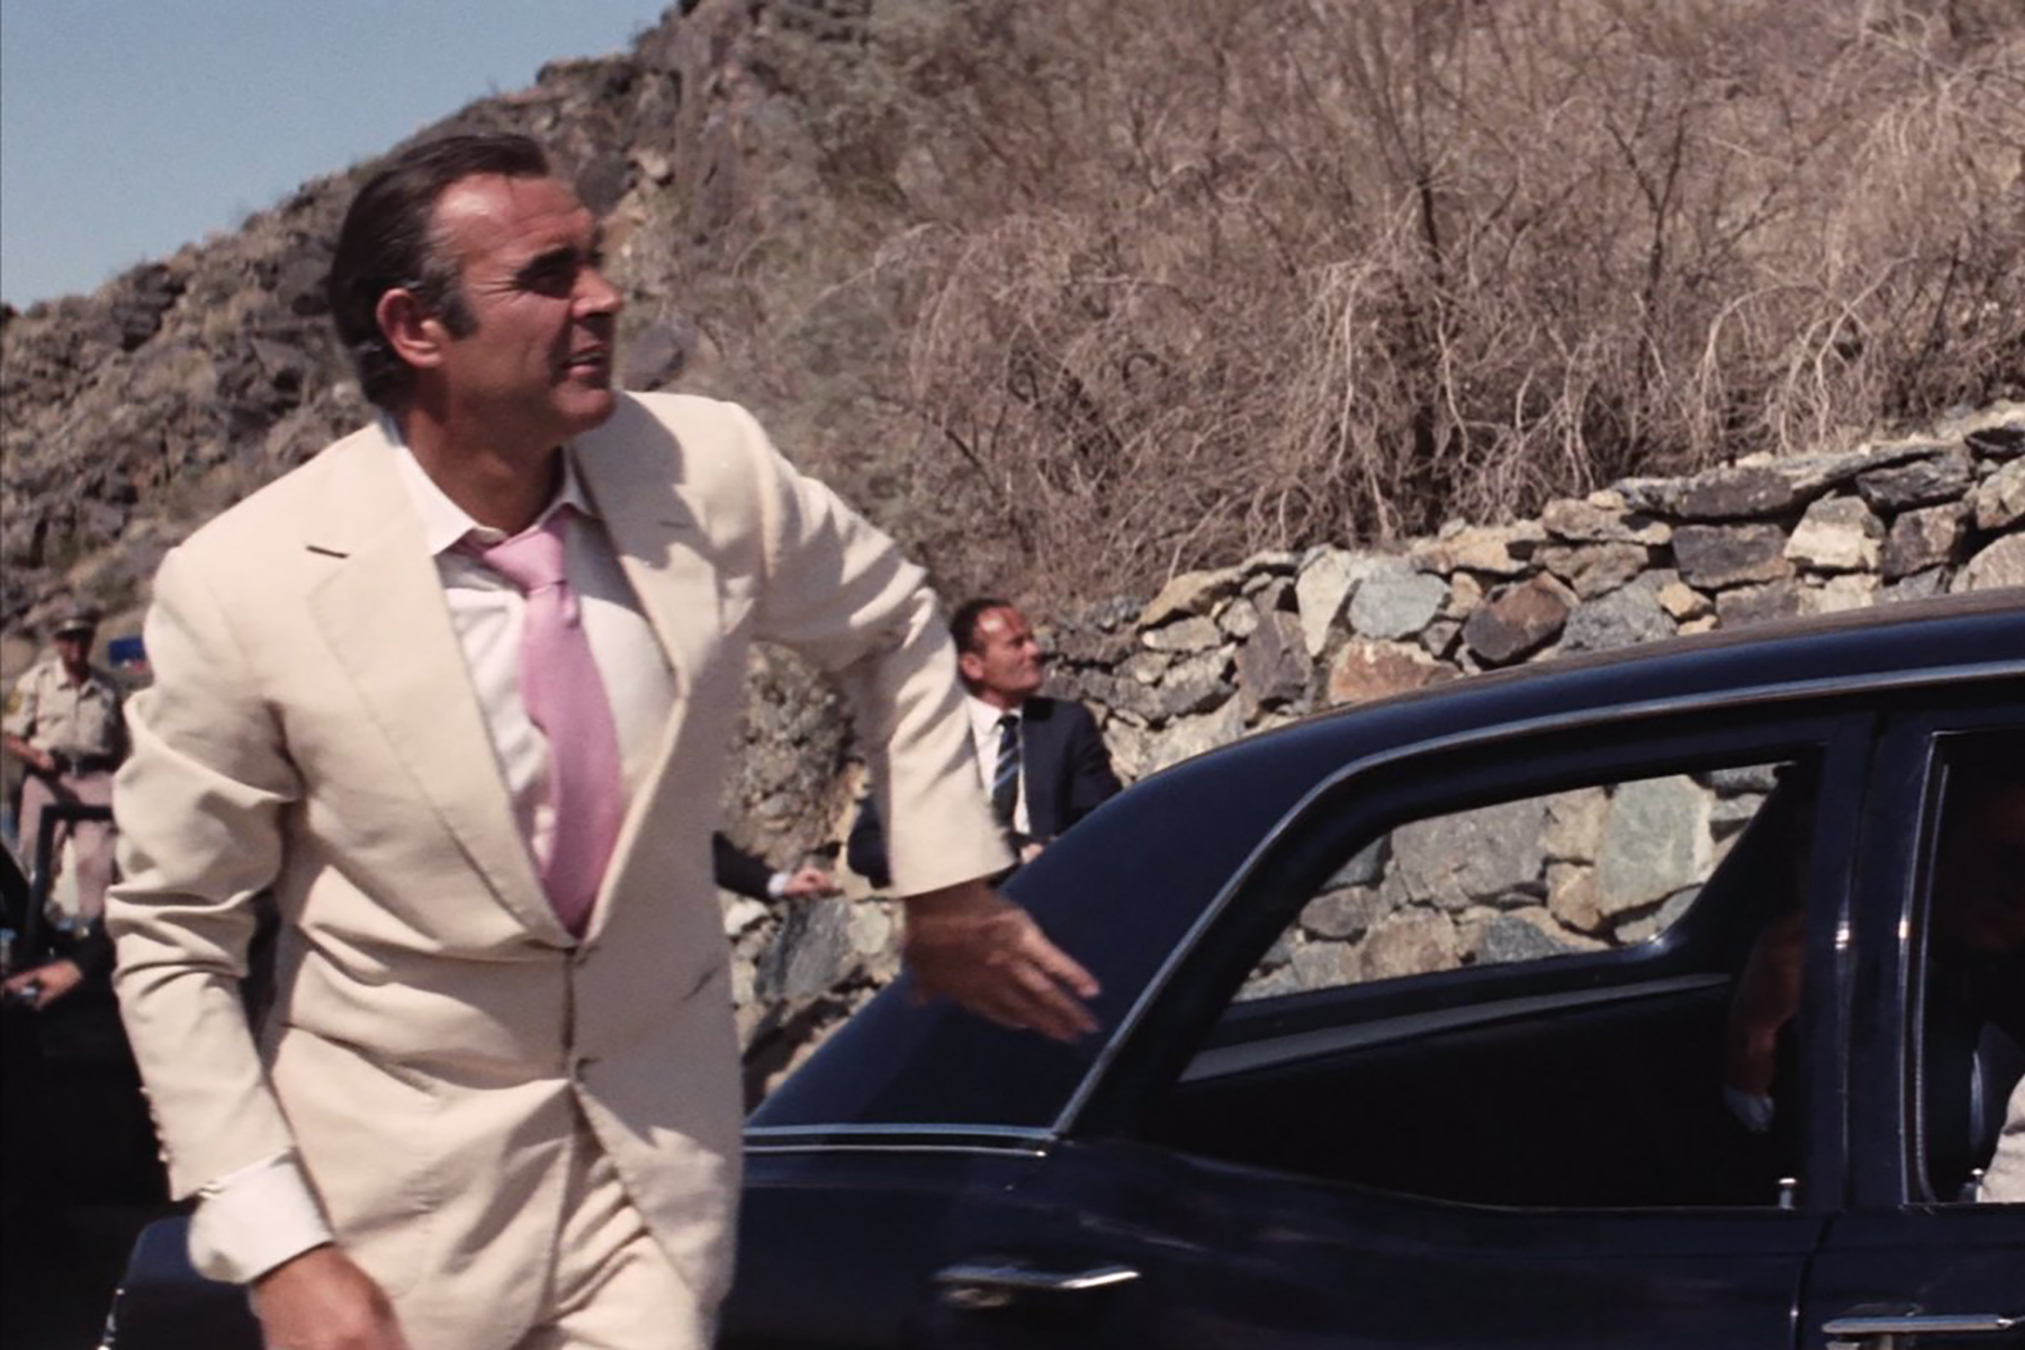 Sean Connery rocks a tan suit in Diamonds are Forever.